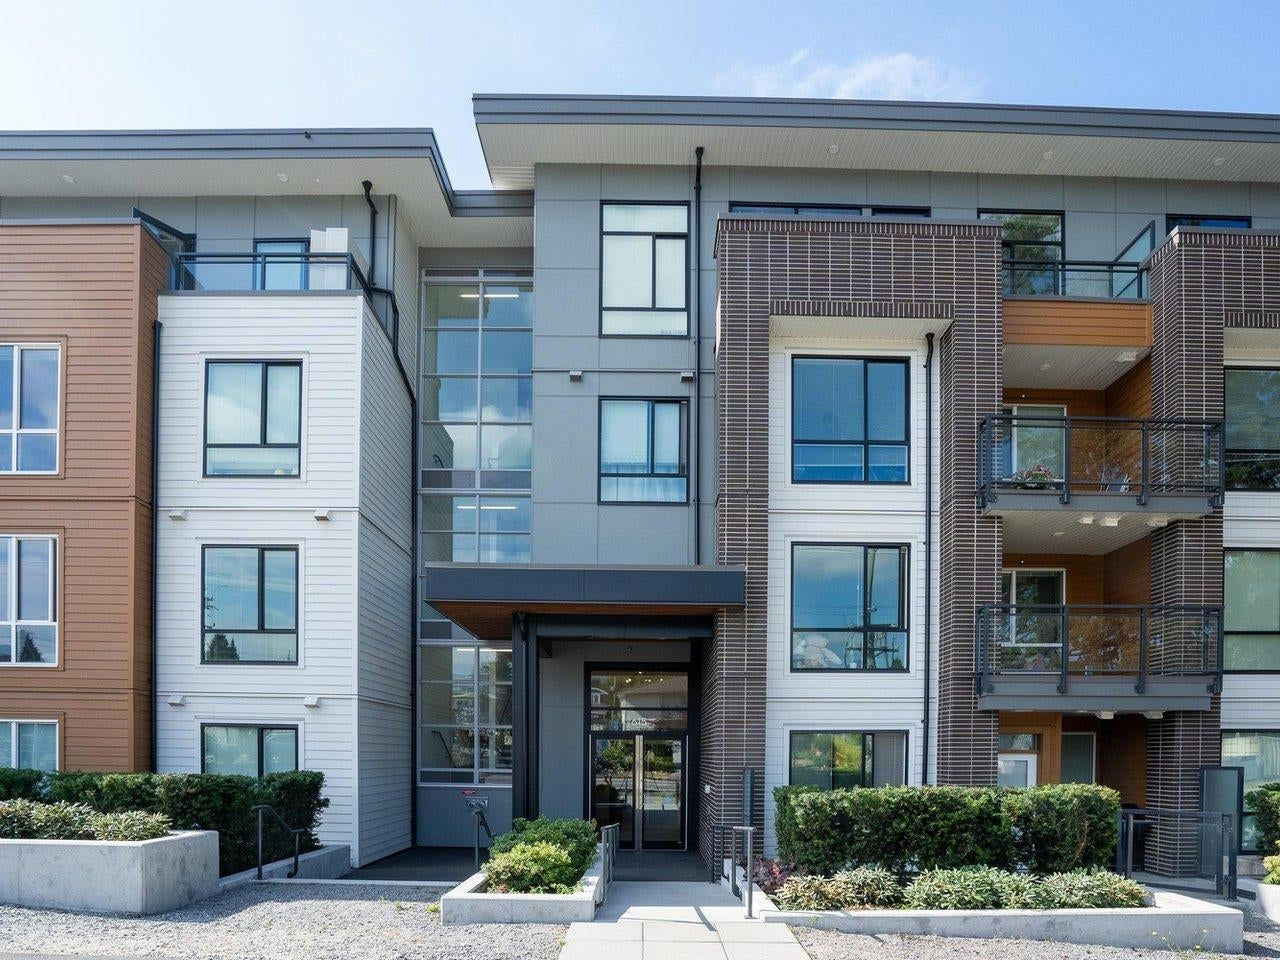 409 615 E 3RD STREET - Lower Lonsdale Apartment/Condo for sale, 2 Bedrooms (R2621616) - #1